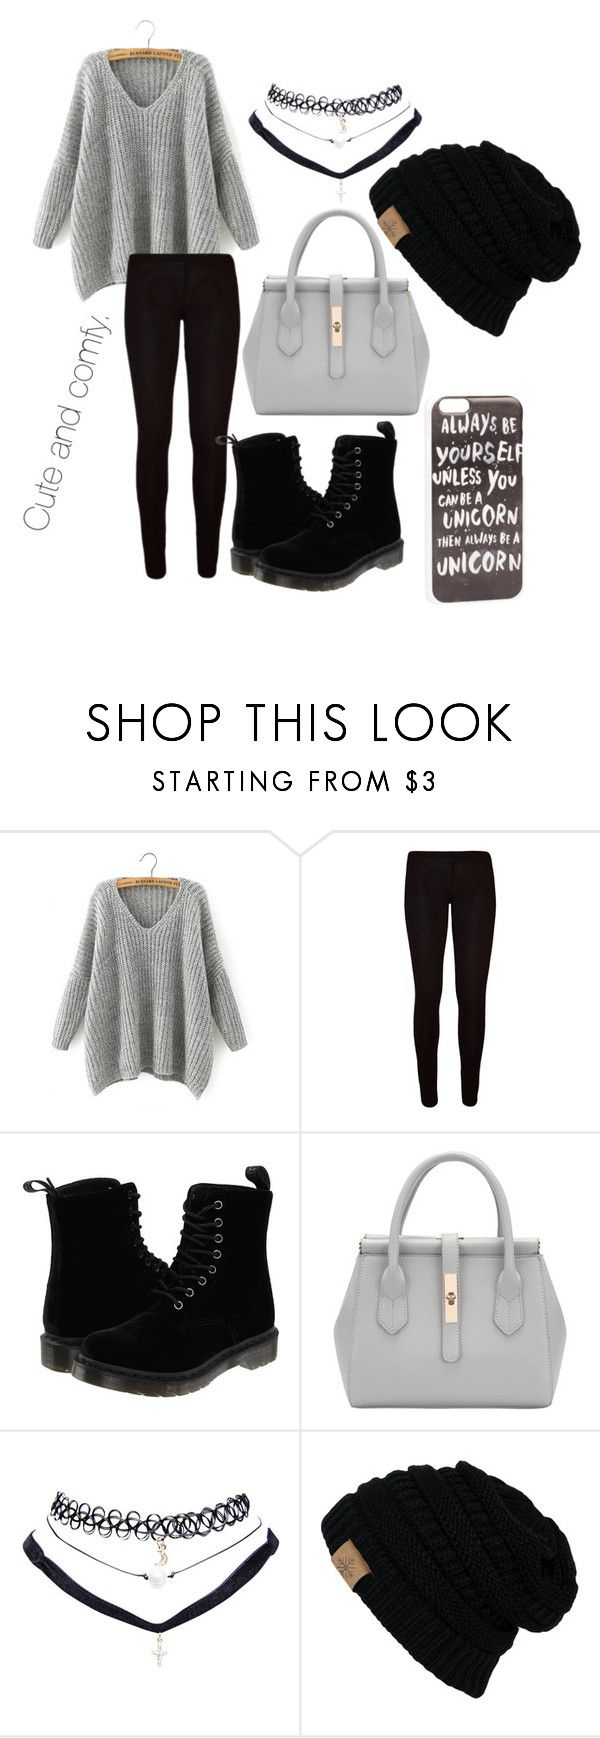 """""""Cute and comfy"""" by jenwolf2121 ❤ liked on Polyvore featuring Chicnova Fashion, Dr. Martens, Wet Seal and JFR"""